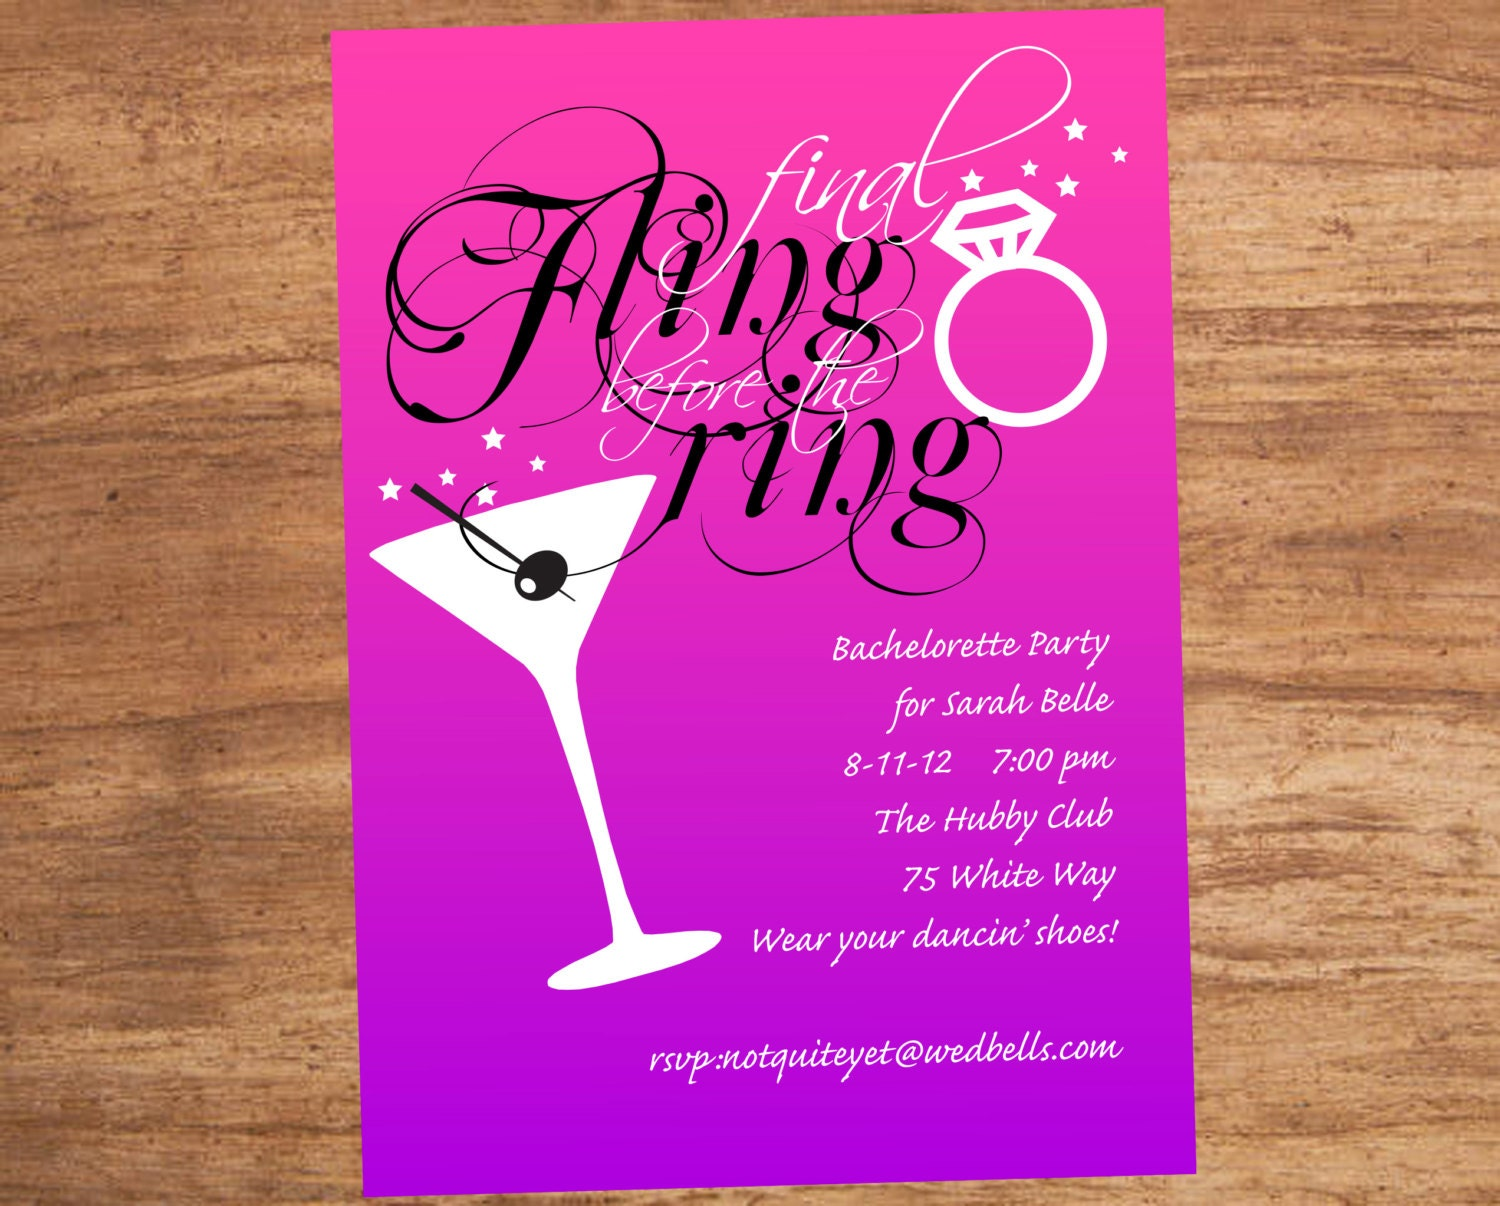 bachelorette party invitation wording - Picture Ideas References